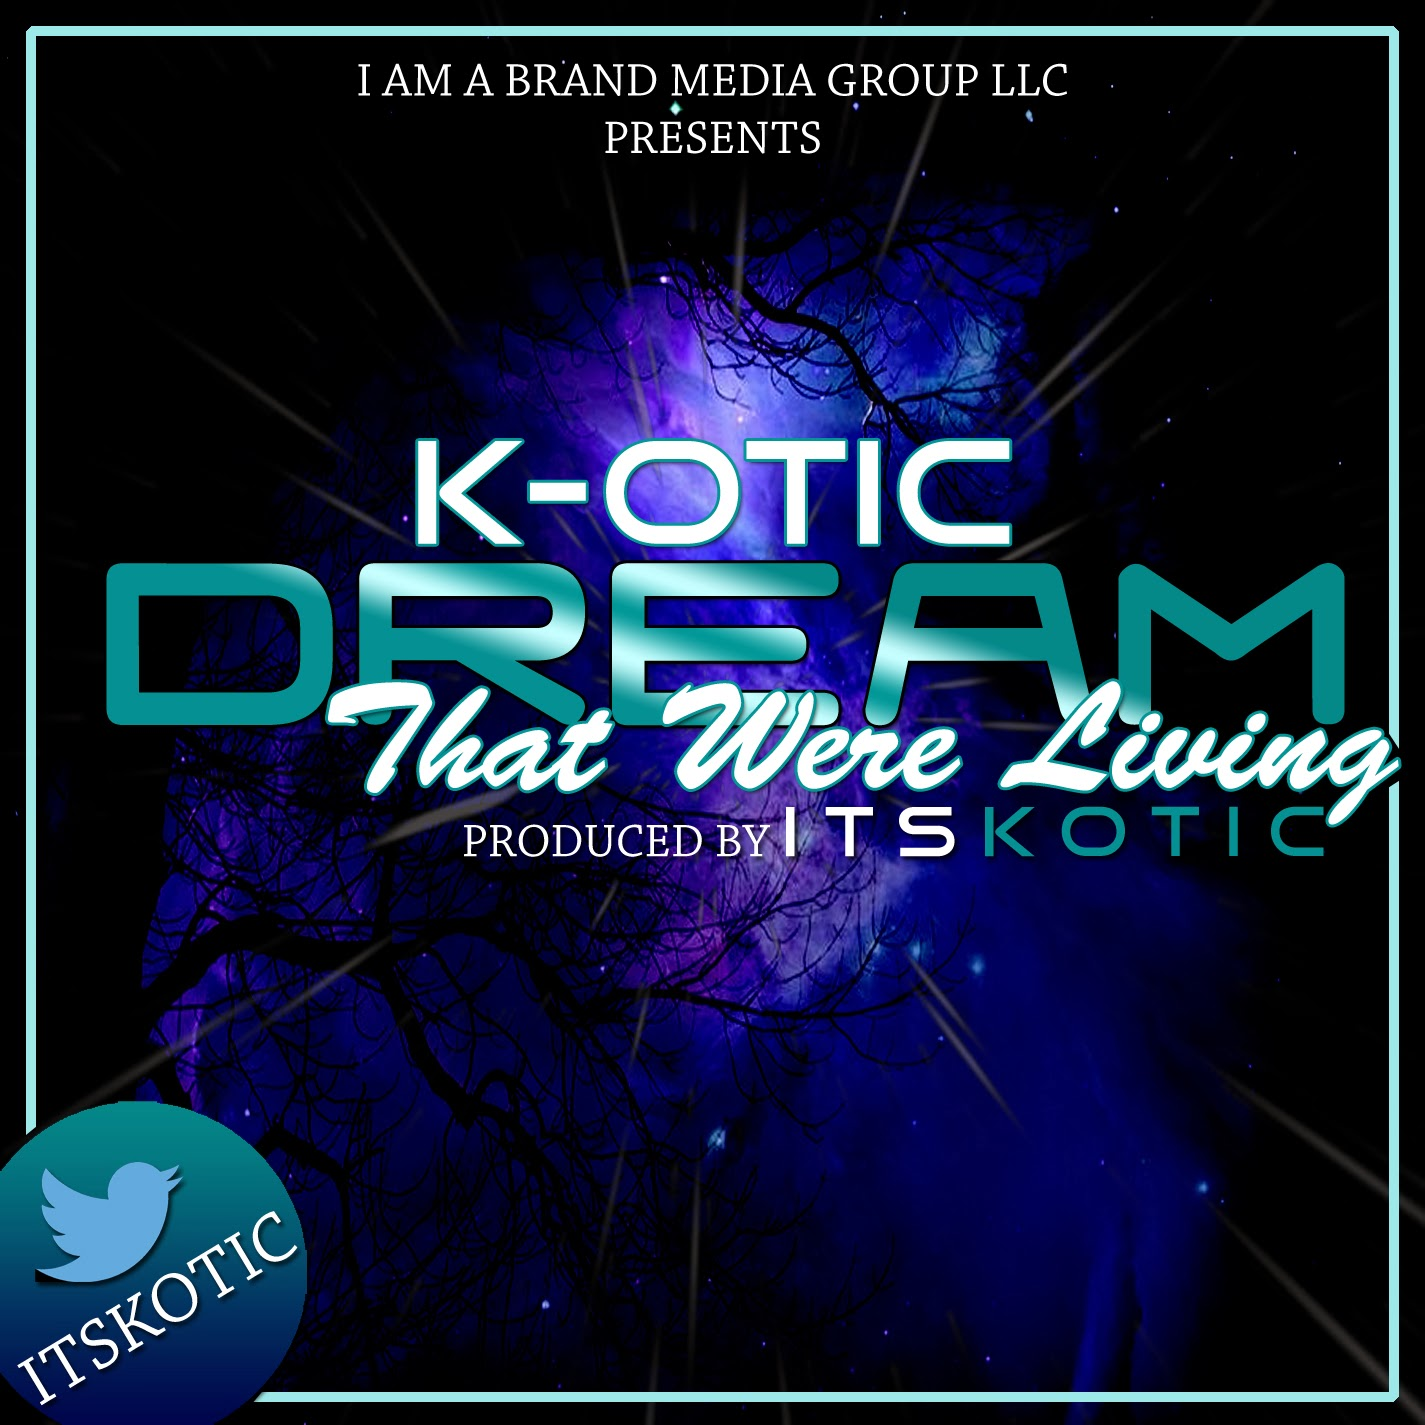 K- OTIC Dream That Were Living CD Cover promotional flyer image